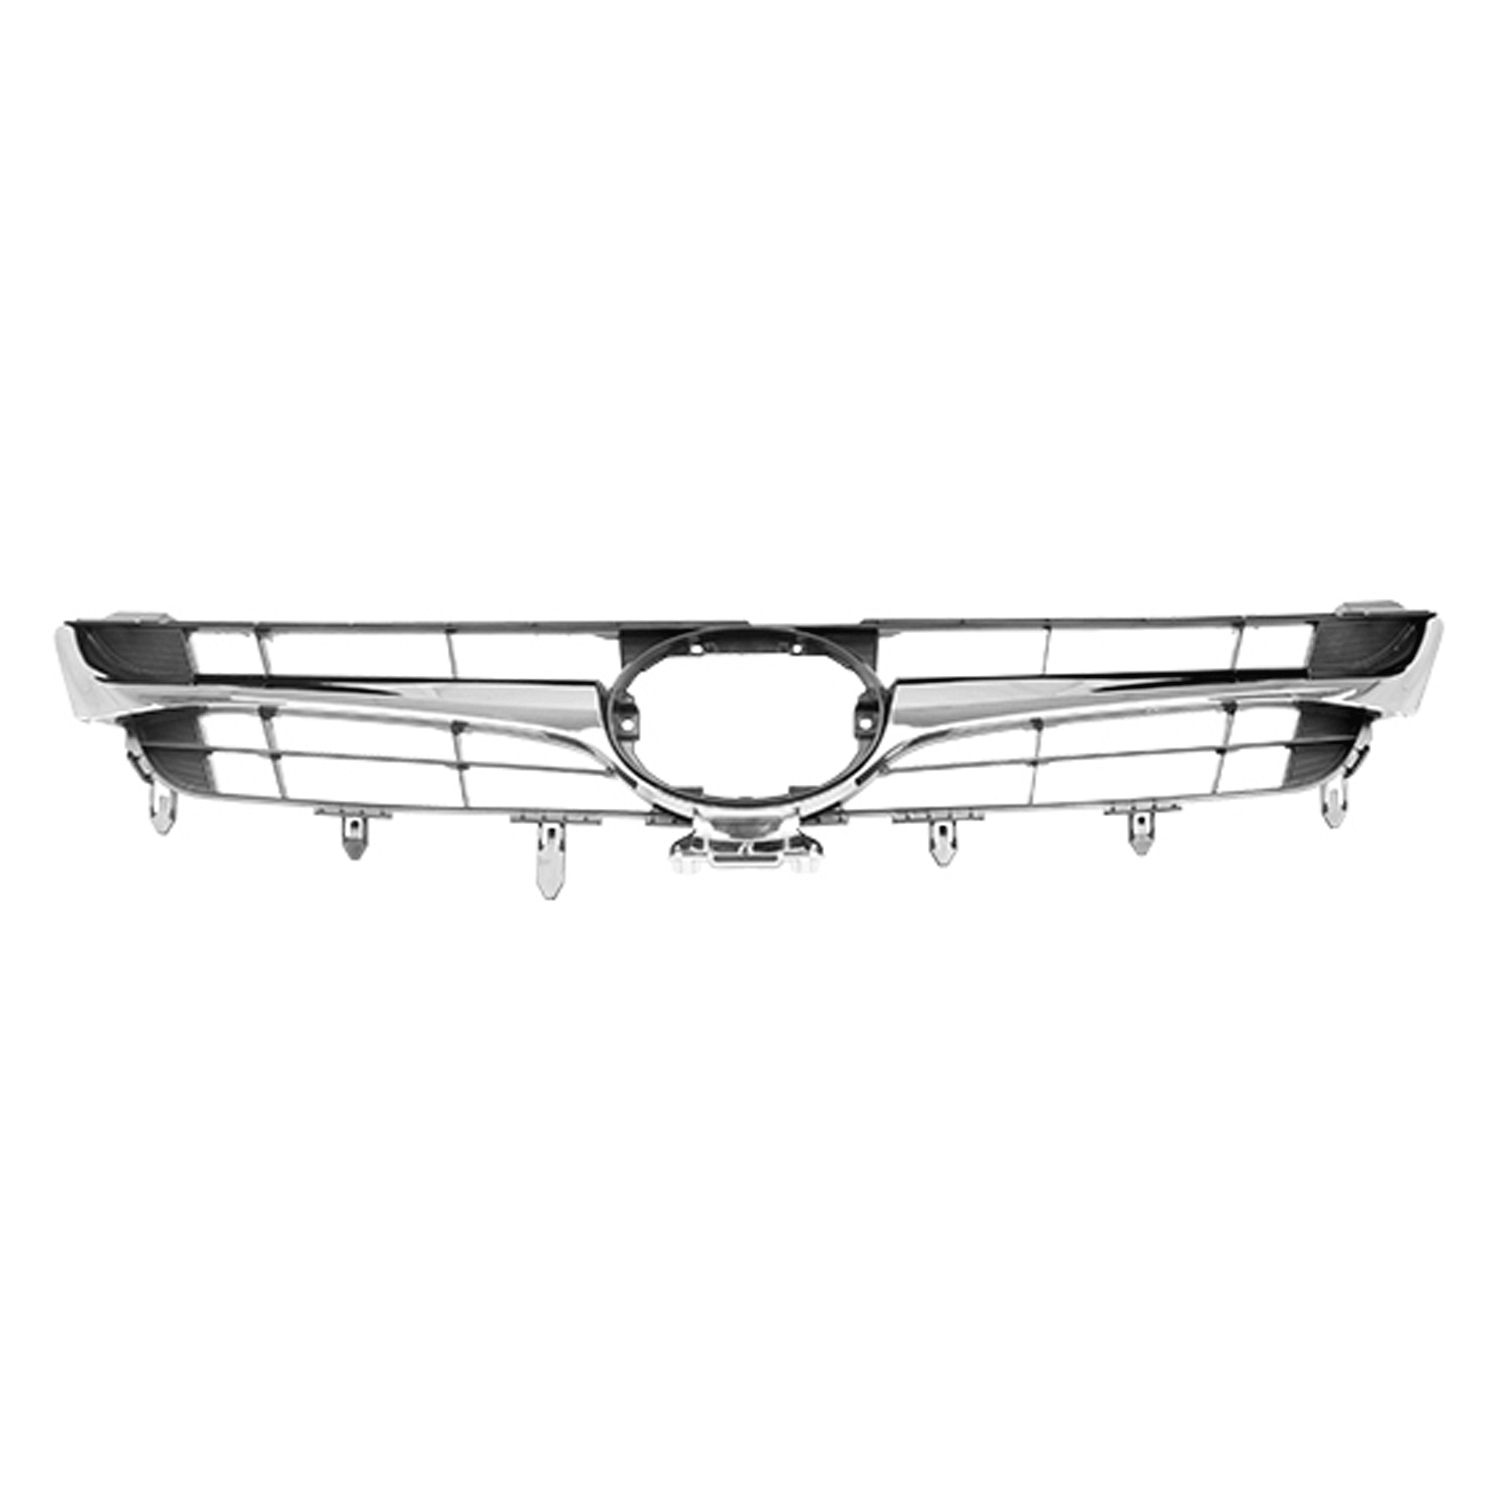 Cpp Grill Assembly For Toyota Camry Grille